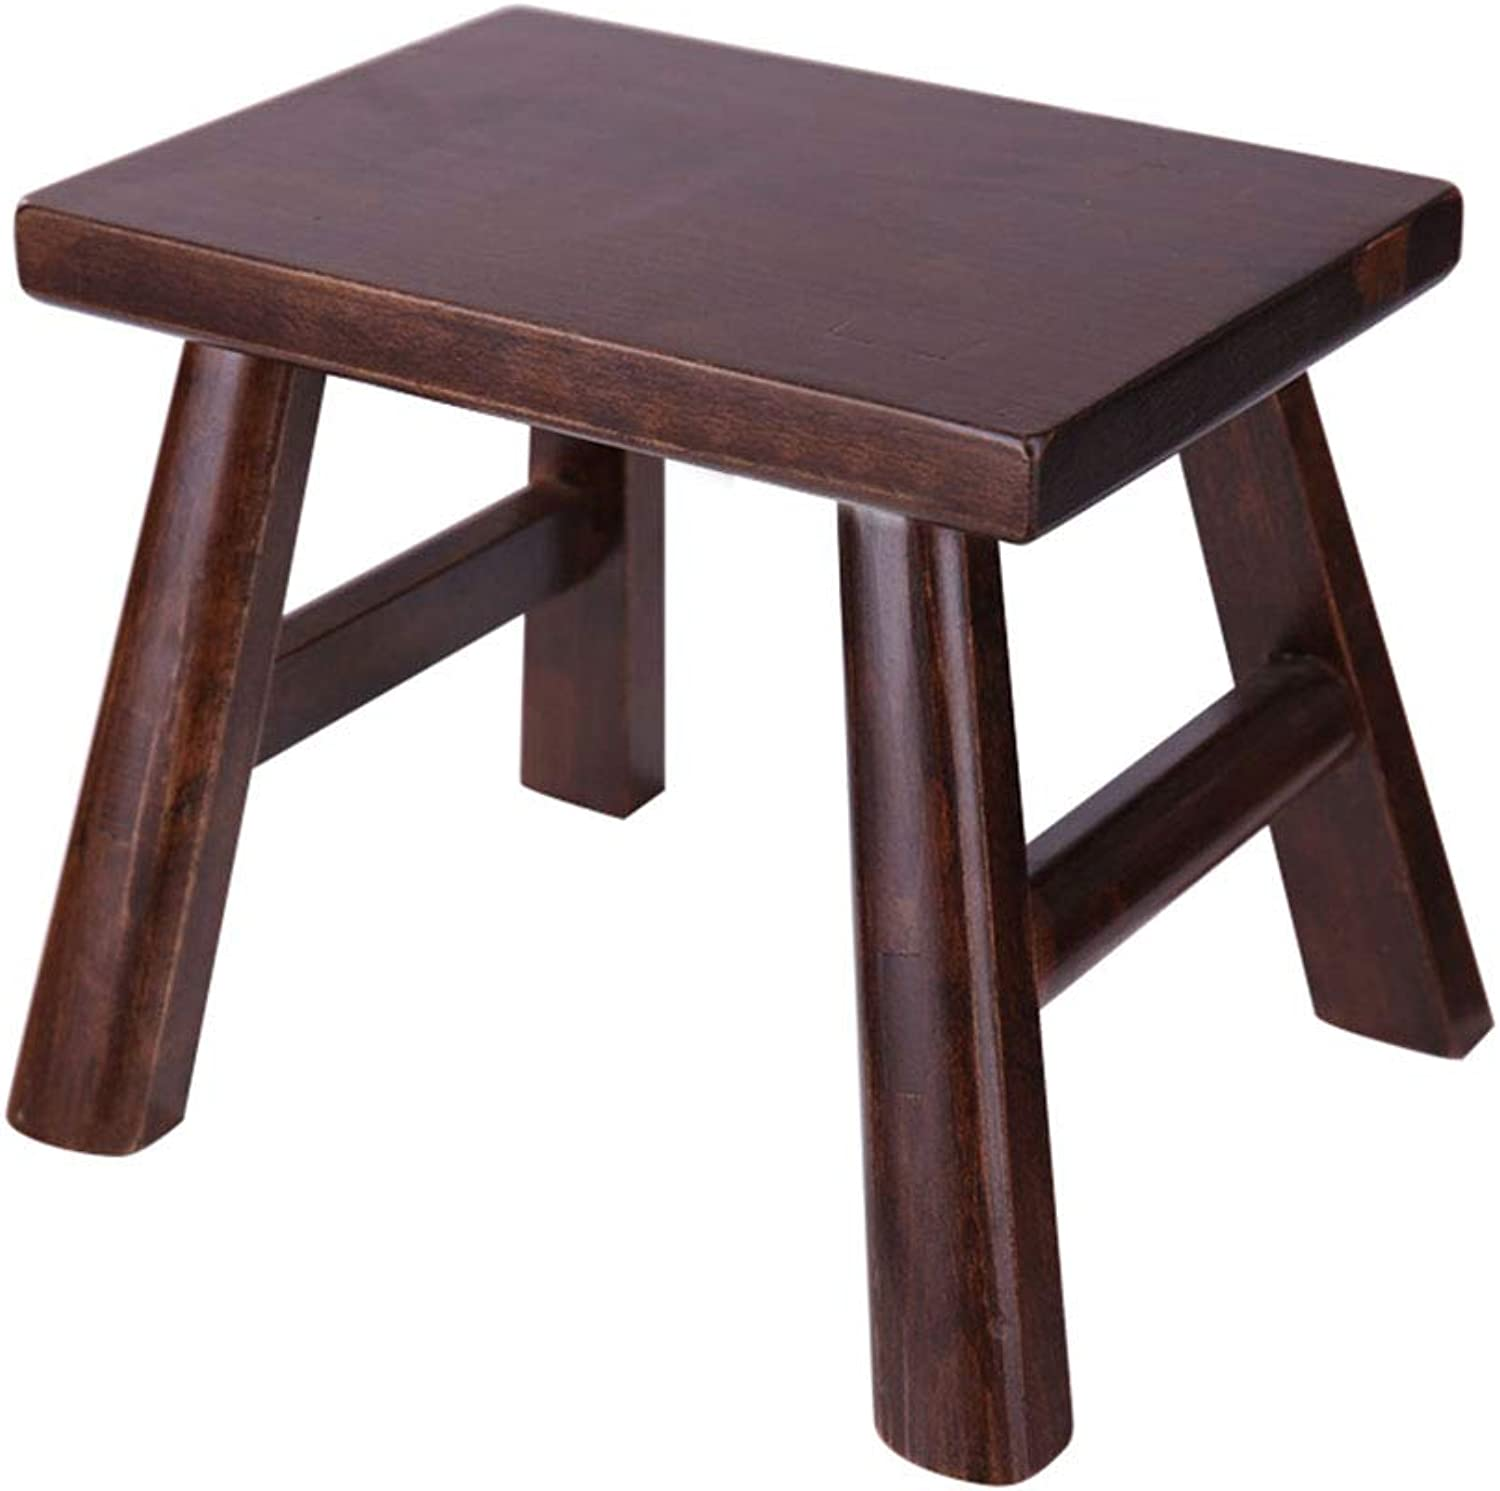 Stool Footstool shoes Bench Sofa Stool Change shoes Bench Wooden Stool Square Stool Solid Wood Living Room Sofa Modern Home Simple Stool ZHANGQIANG (color   Elm Brown, Size   Small)